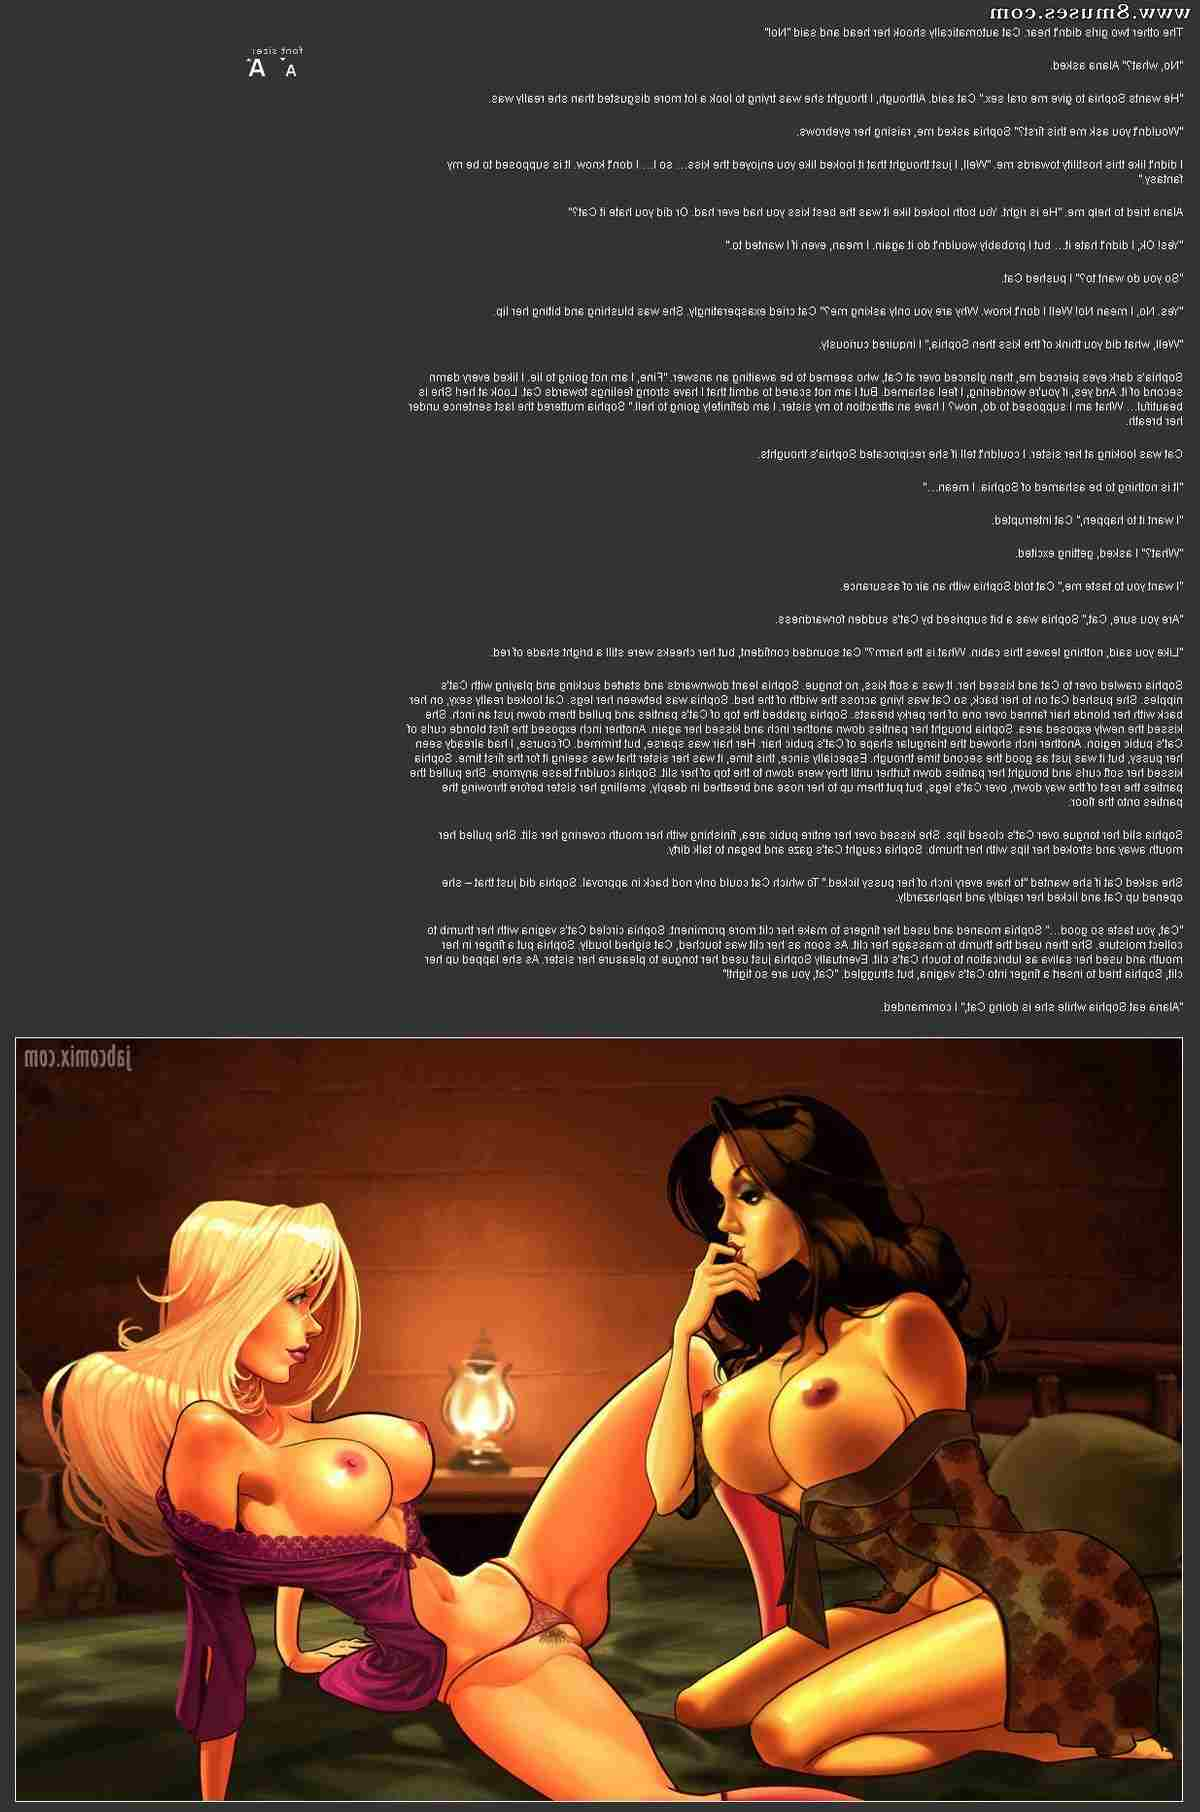 JAB-Comics/A-Blizzard-Night-of-Firsts A_Blizzard__Night_of_Firsts__8muses_-_Sex_and_Porn_Comics_42.jpg